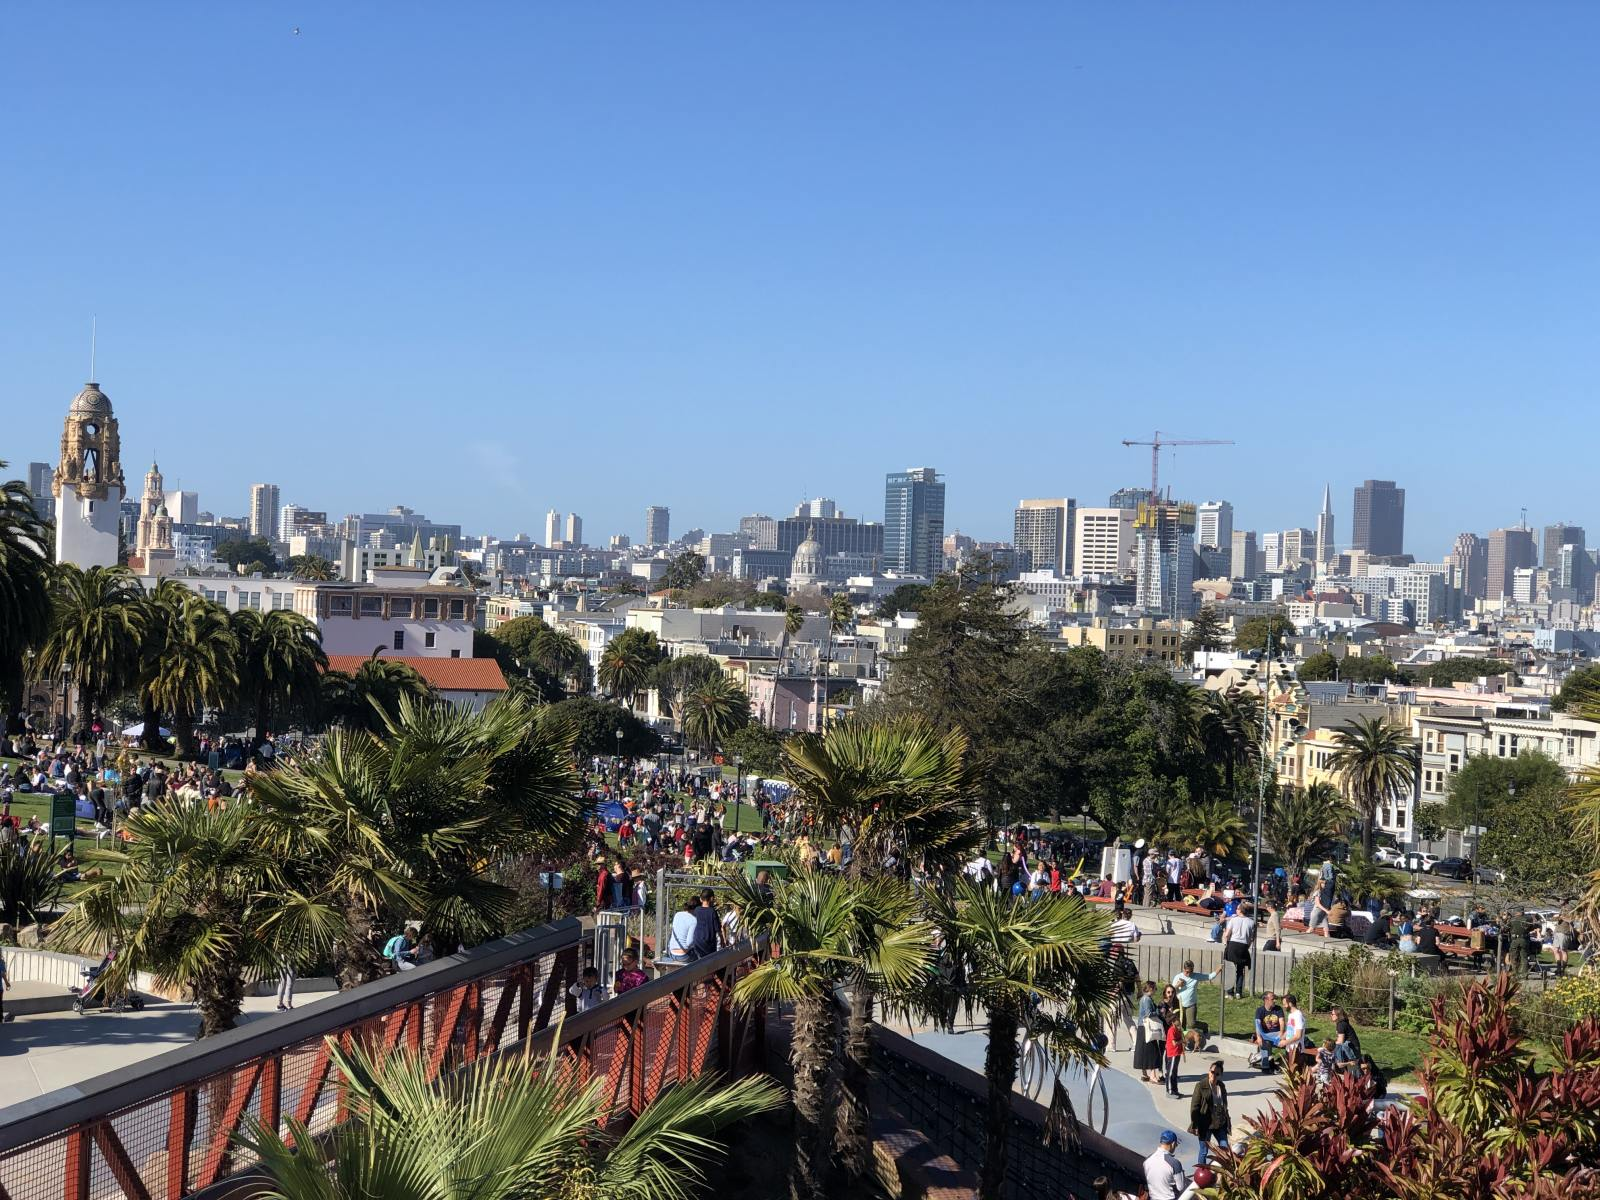 the view from the top of the slide in Dolores Park San Francisco